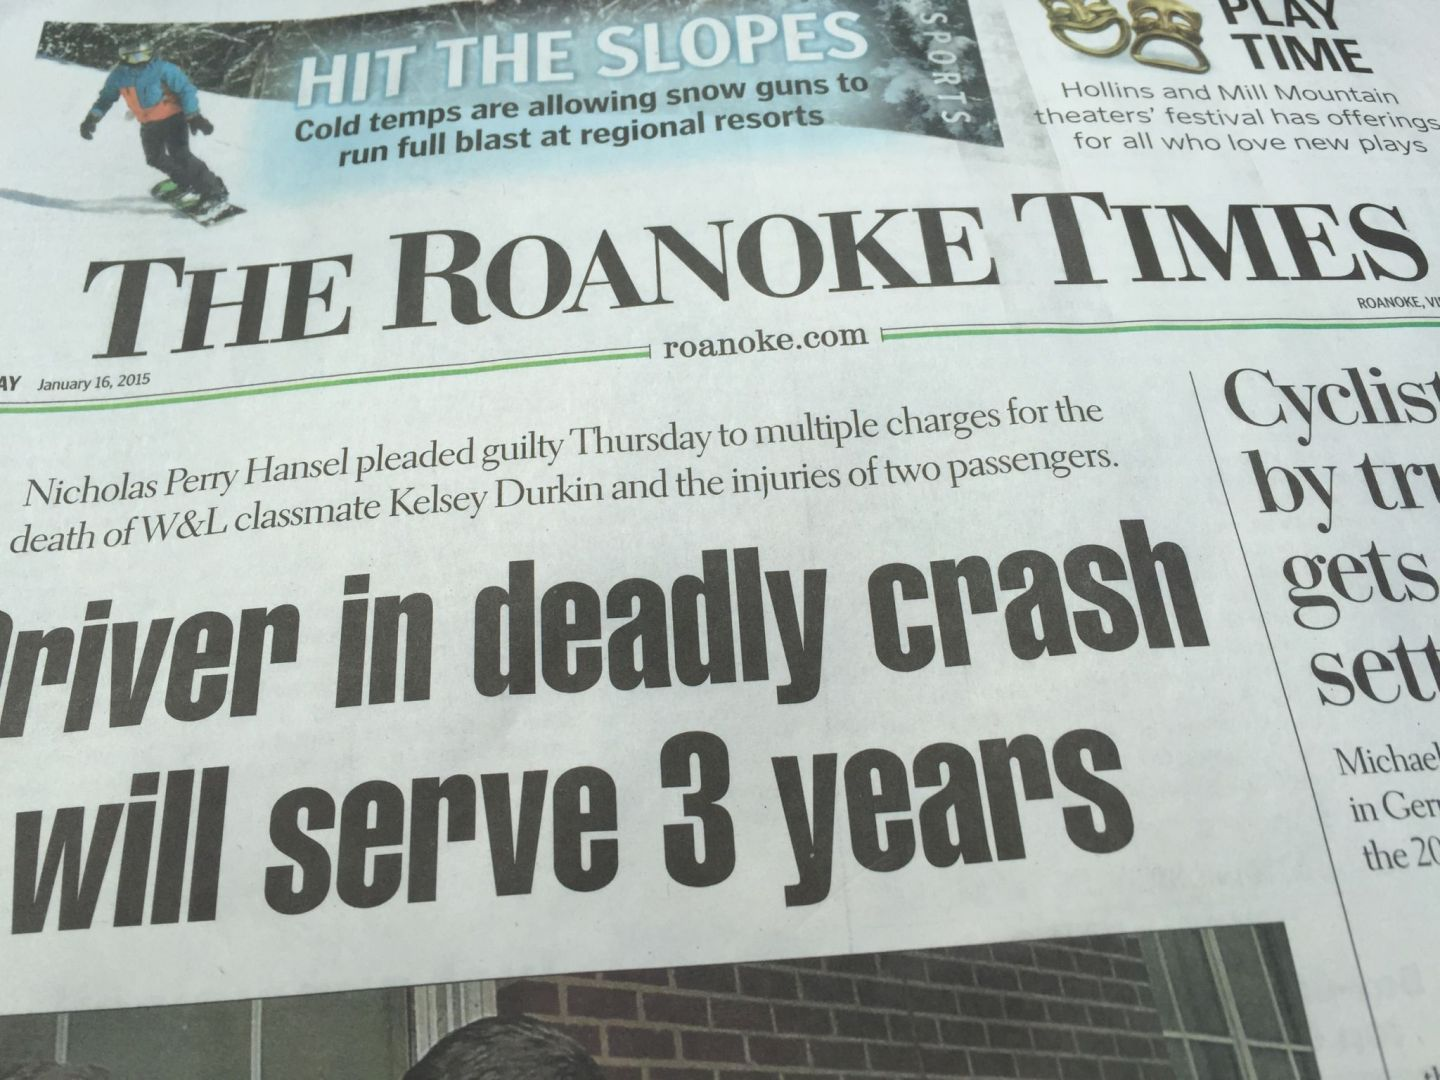 The Roanoke Times newspaper. Pic by @jabberingjourno